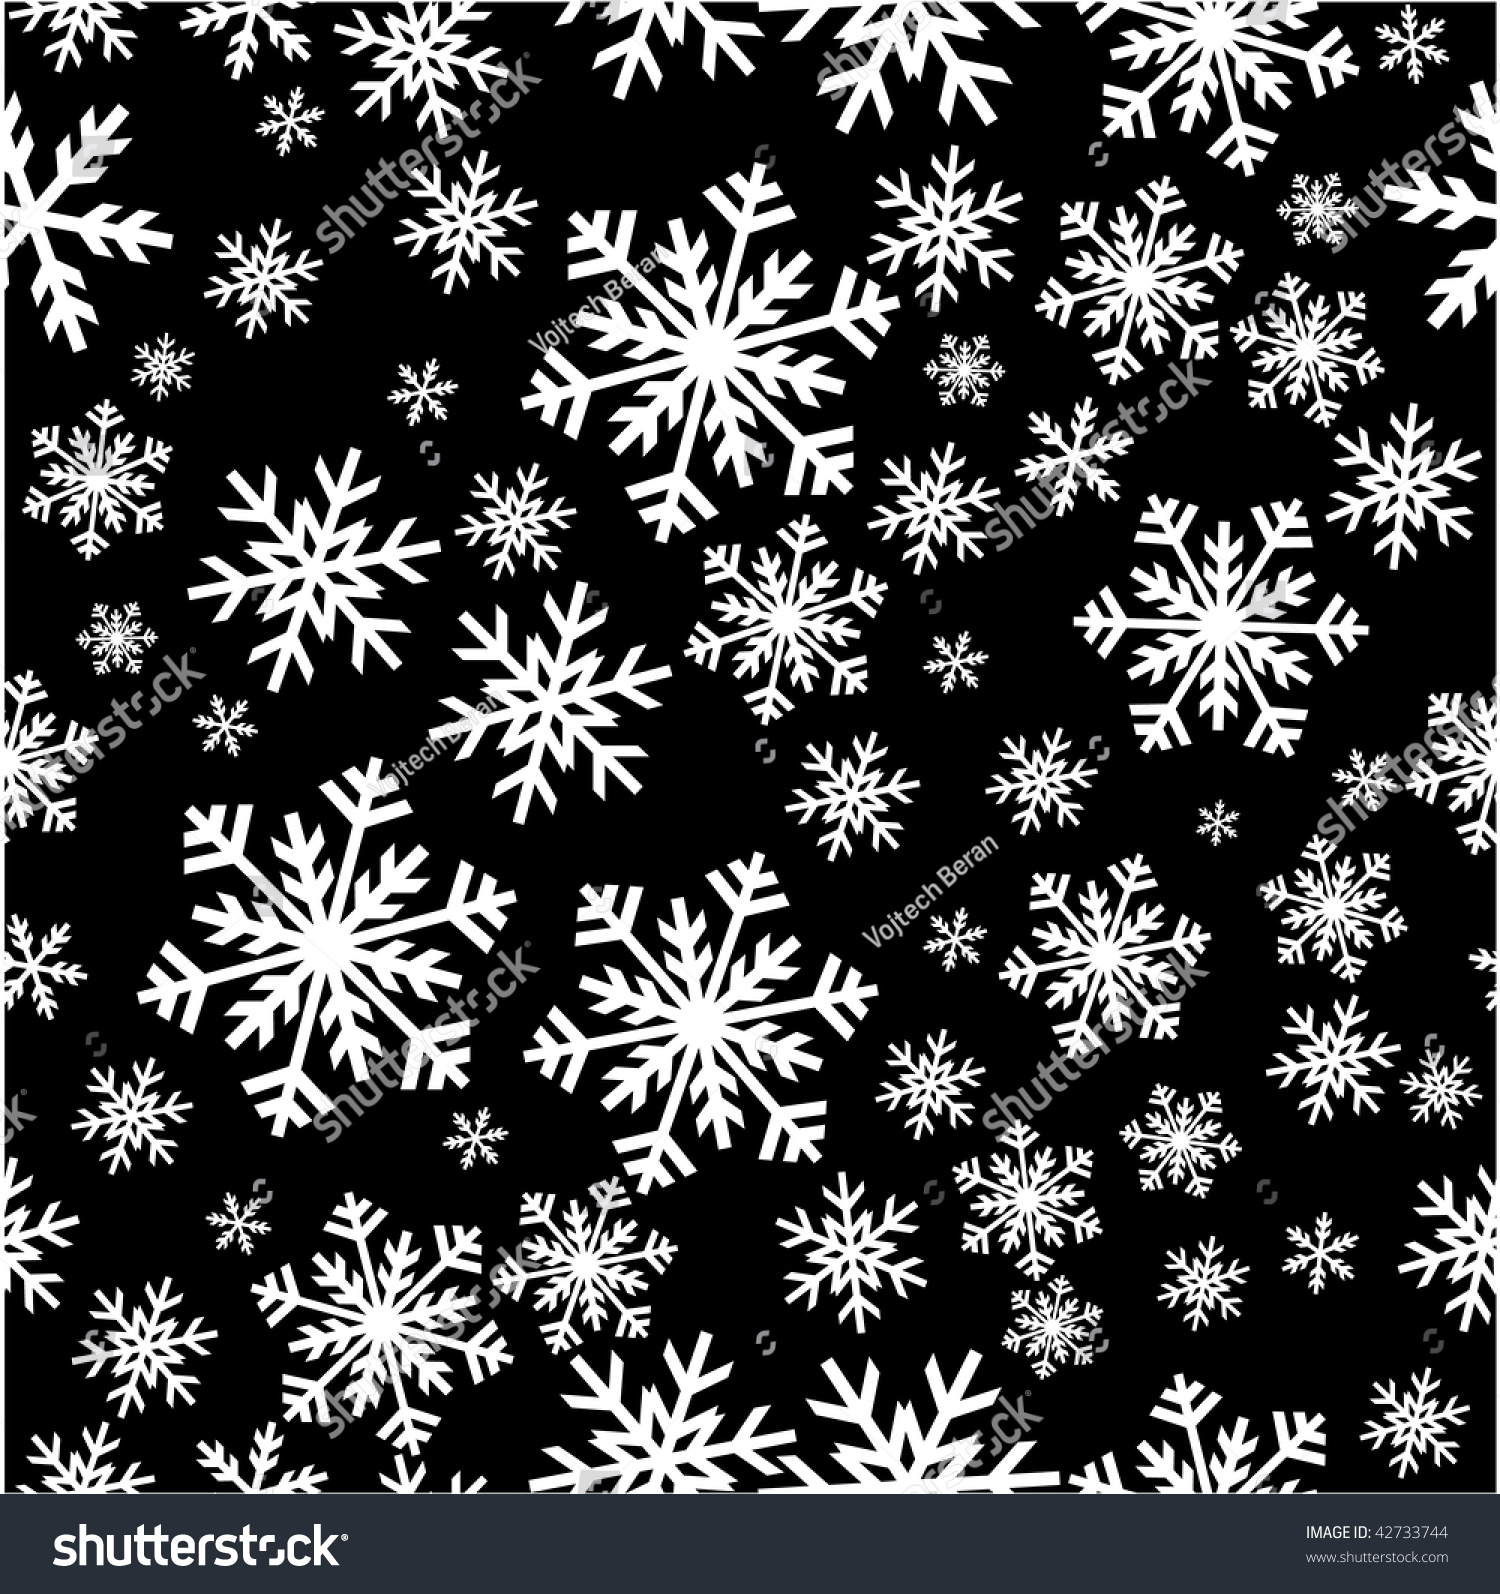 christmas texture snowflakes black background stock vector